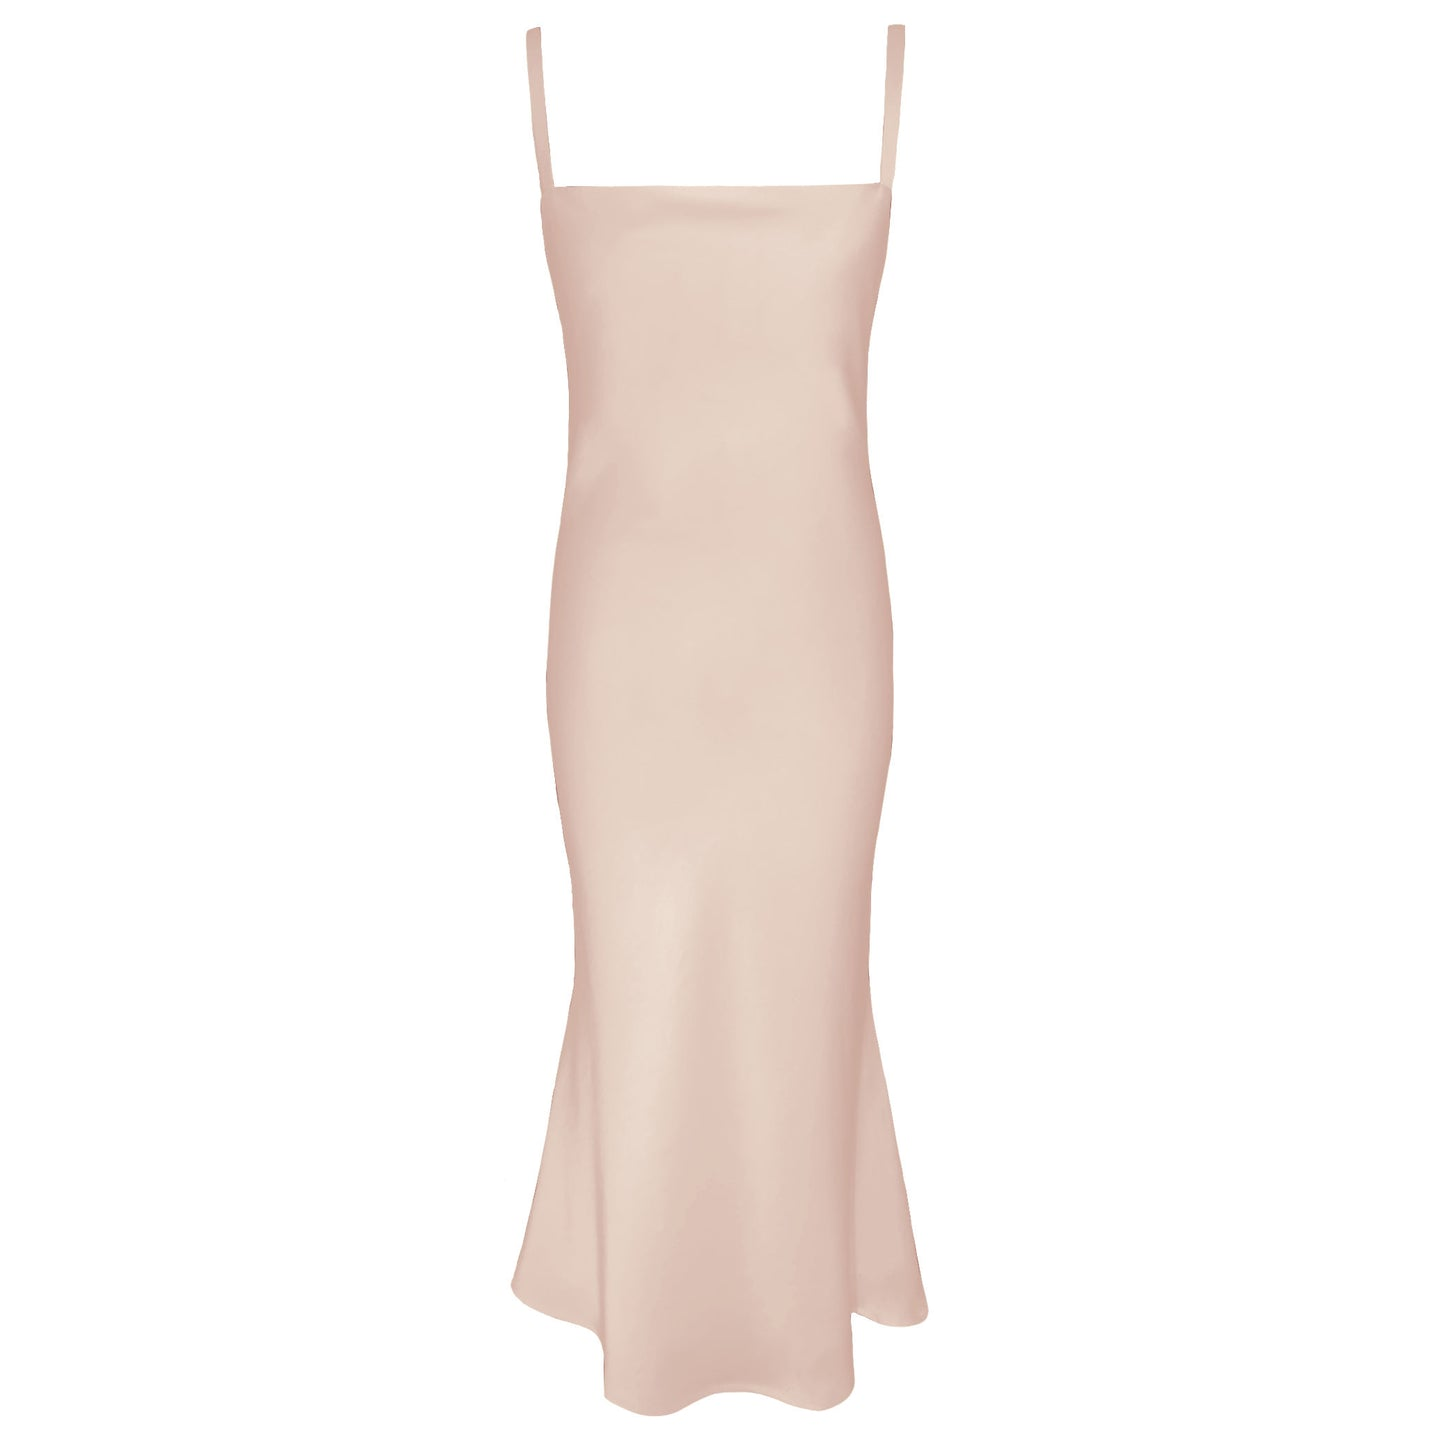 The Ivy Slip Dress